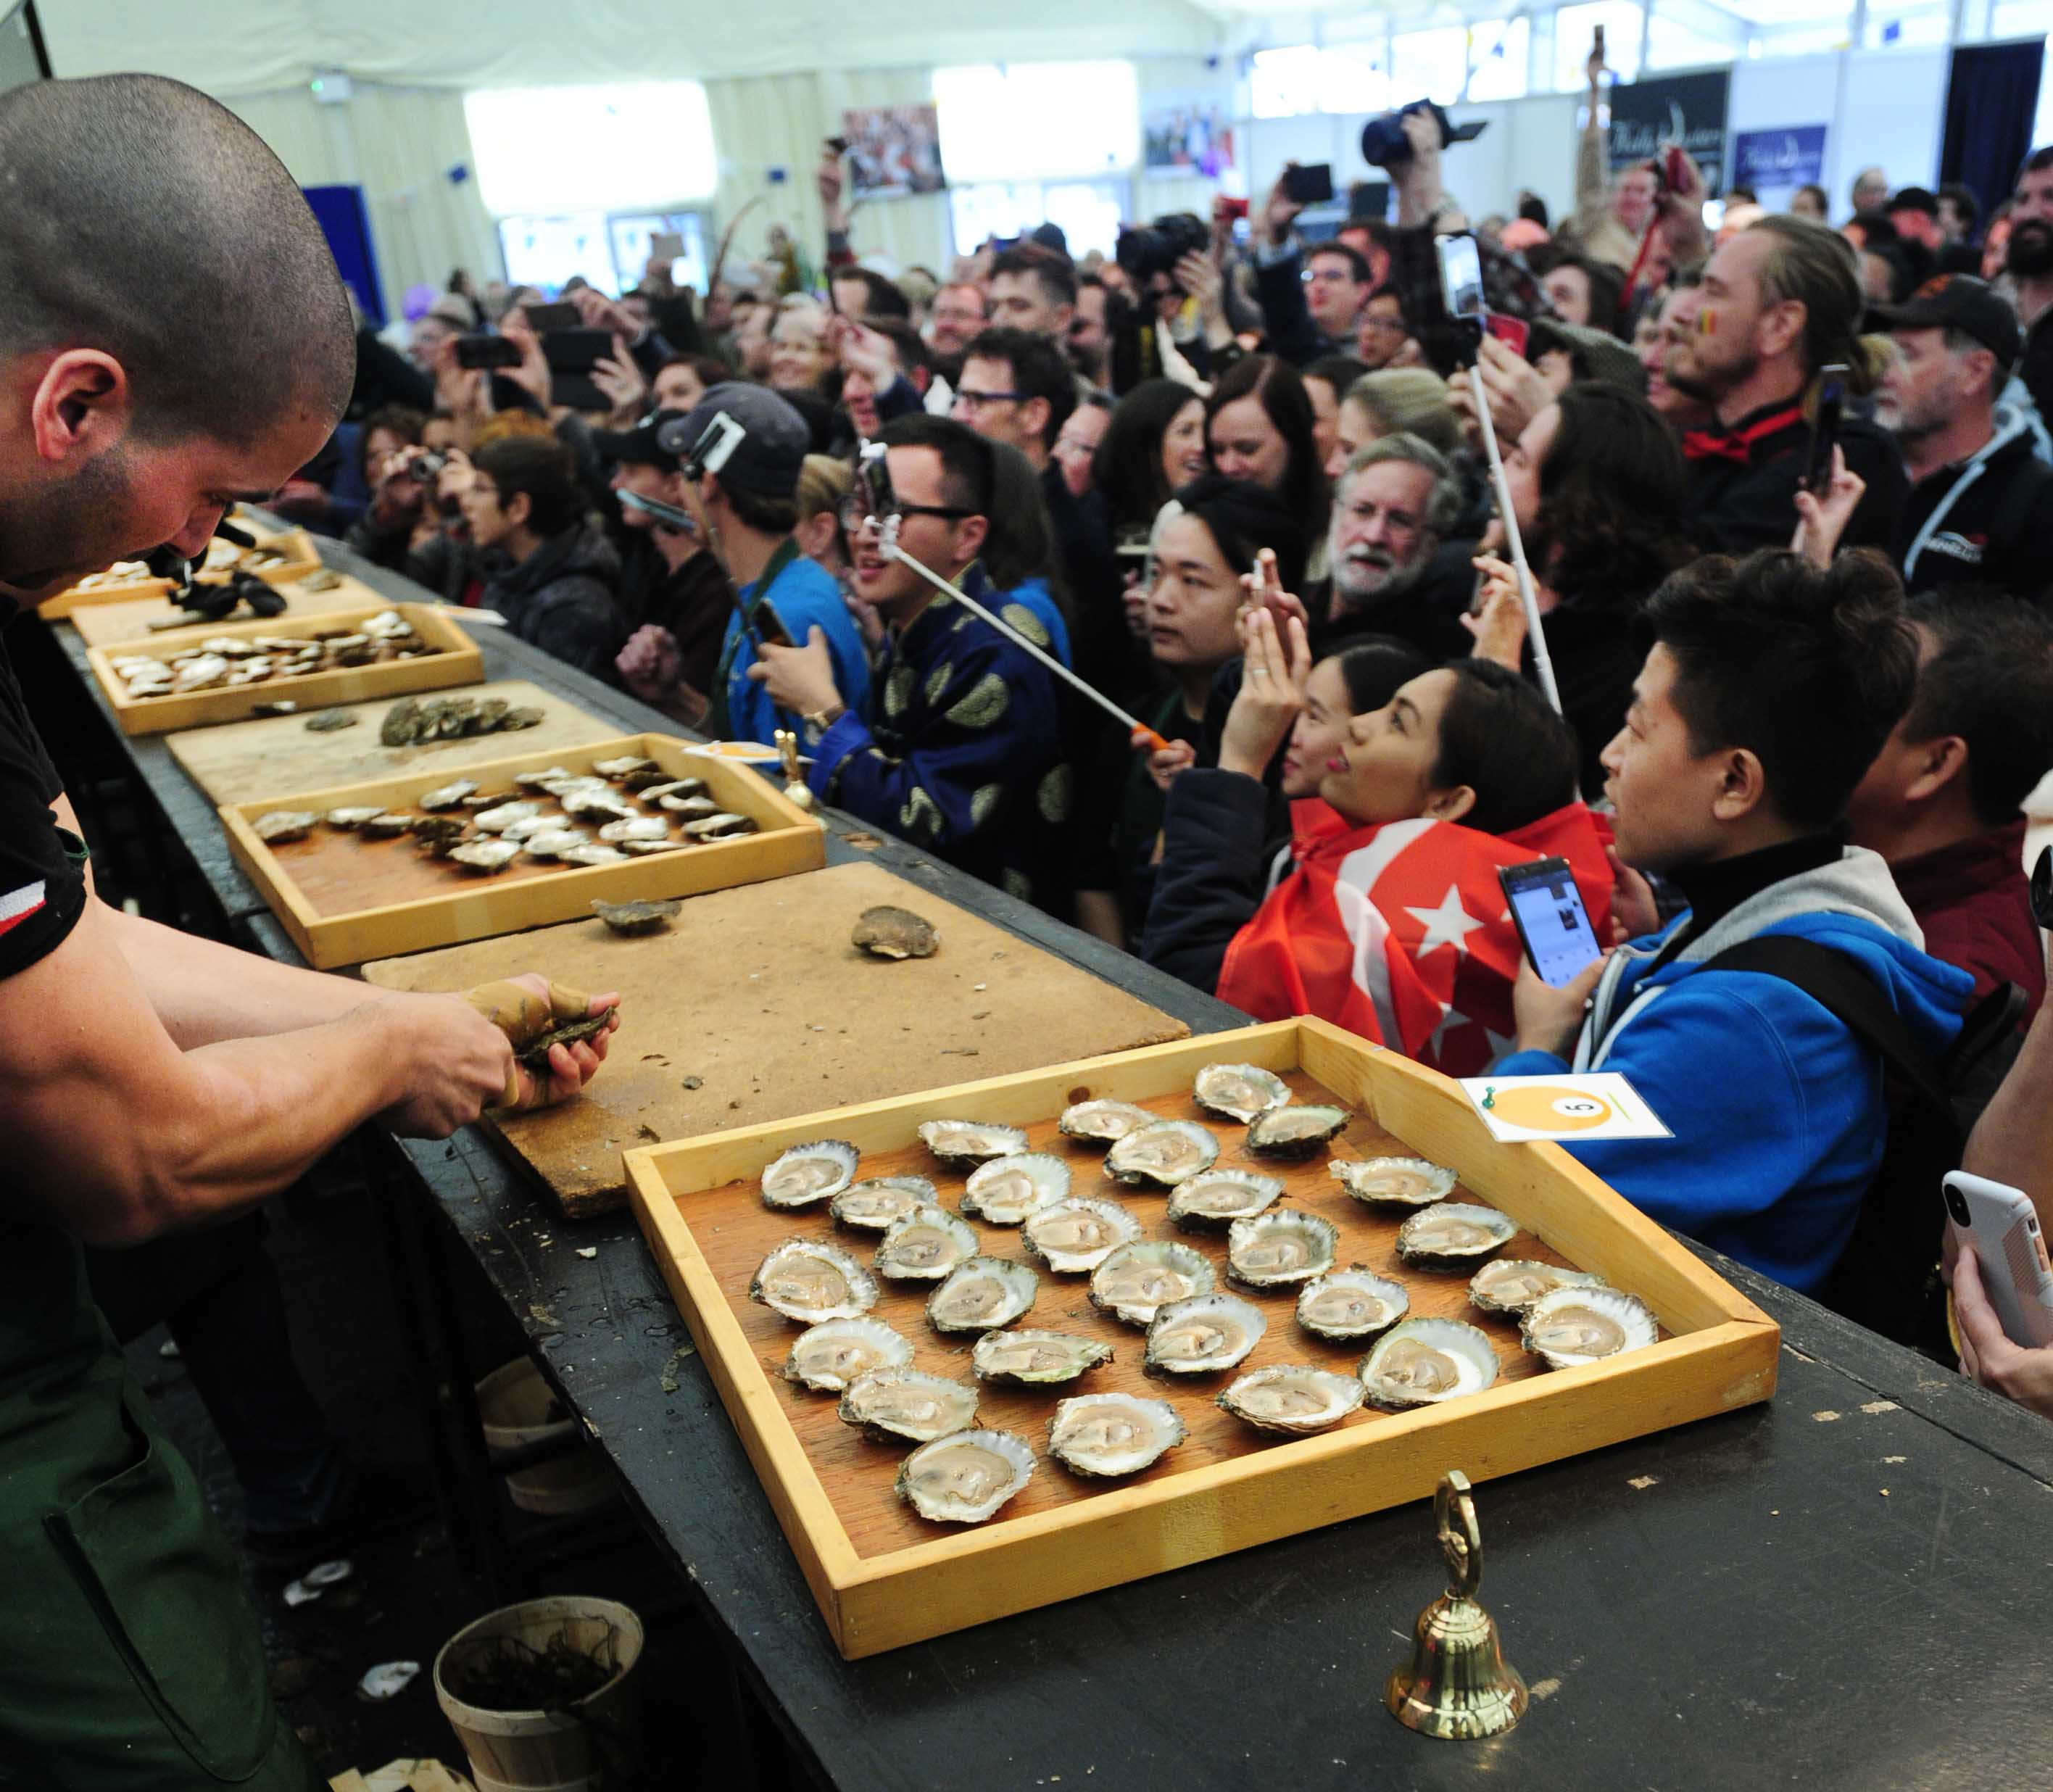 The World Oyster Championship underway in the Festival Marquee